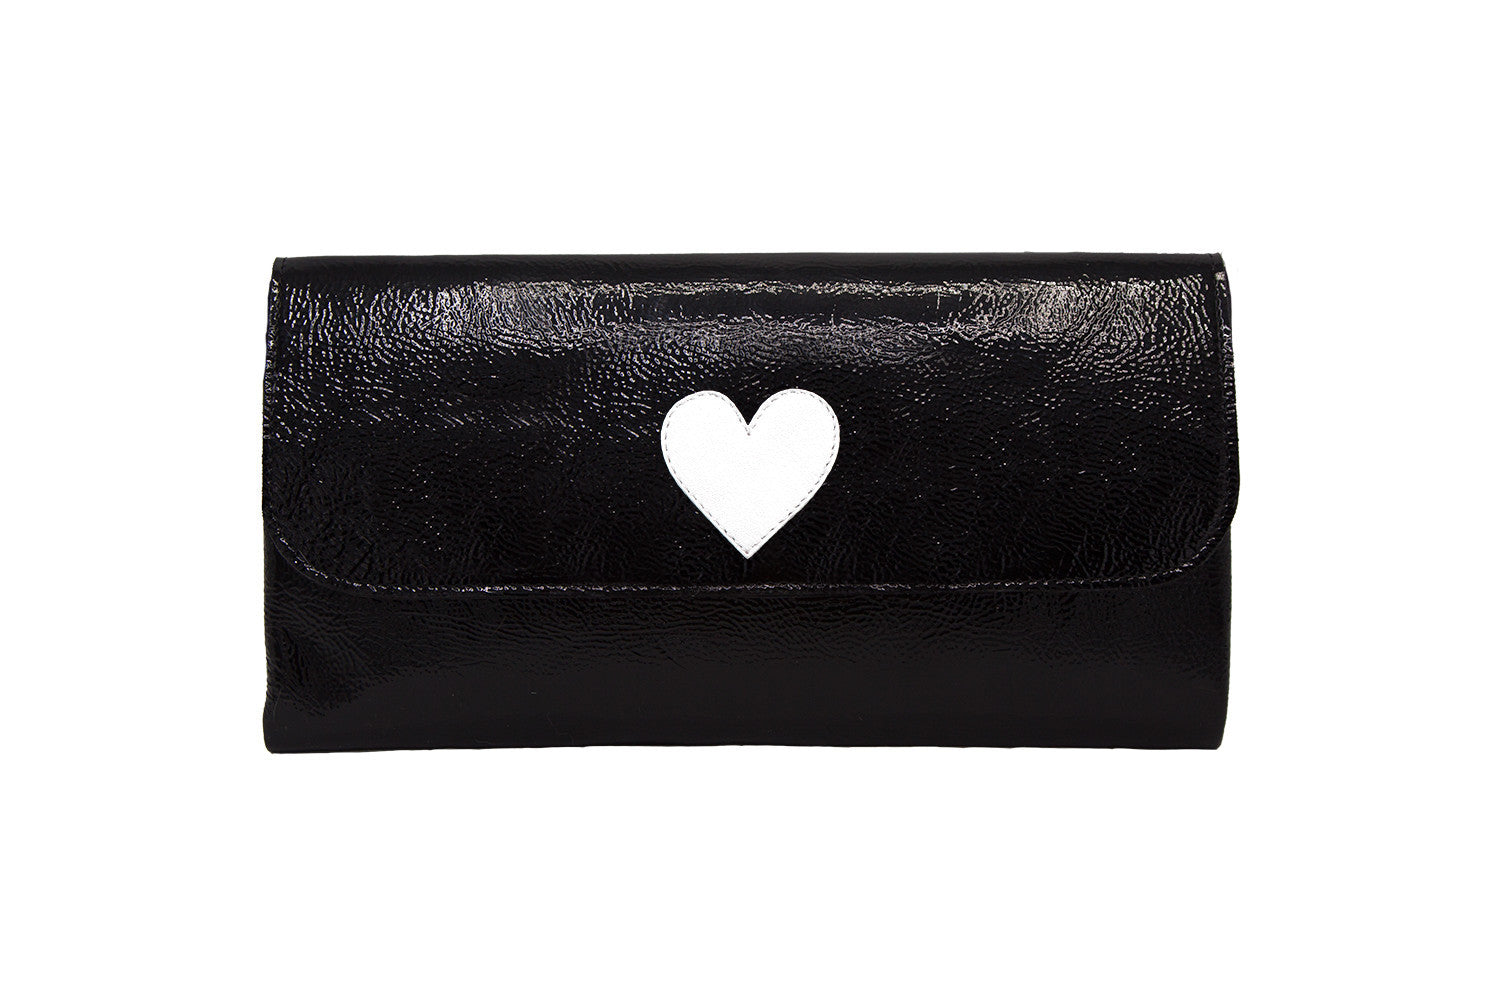 Elle Clutch Cracked Black Patent Leather w/ White Heart